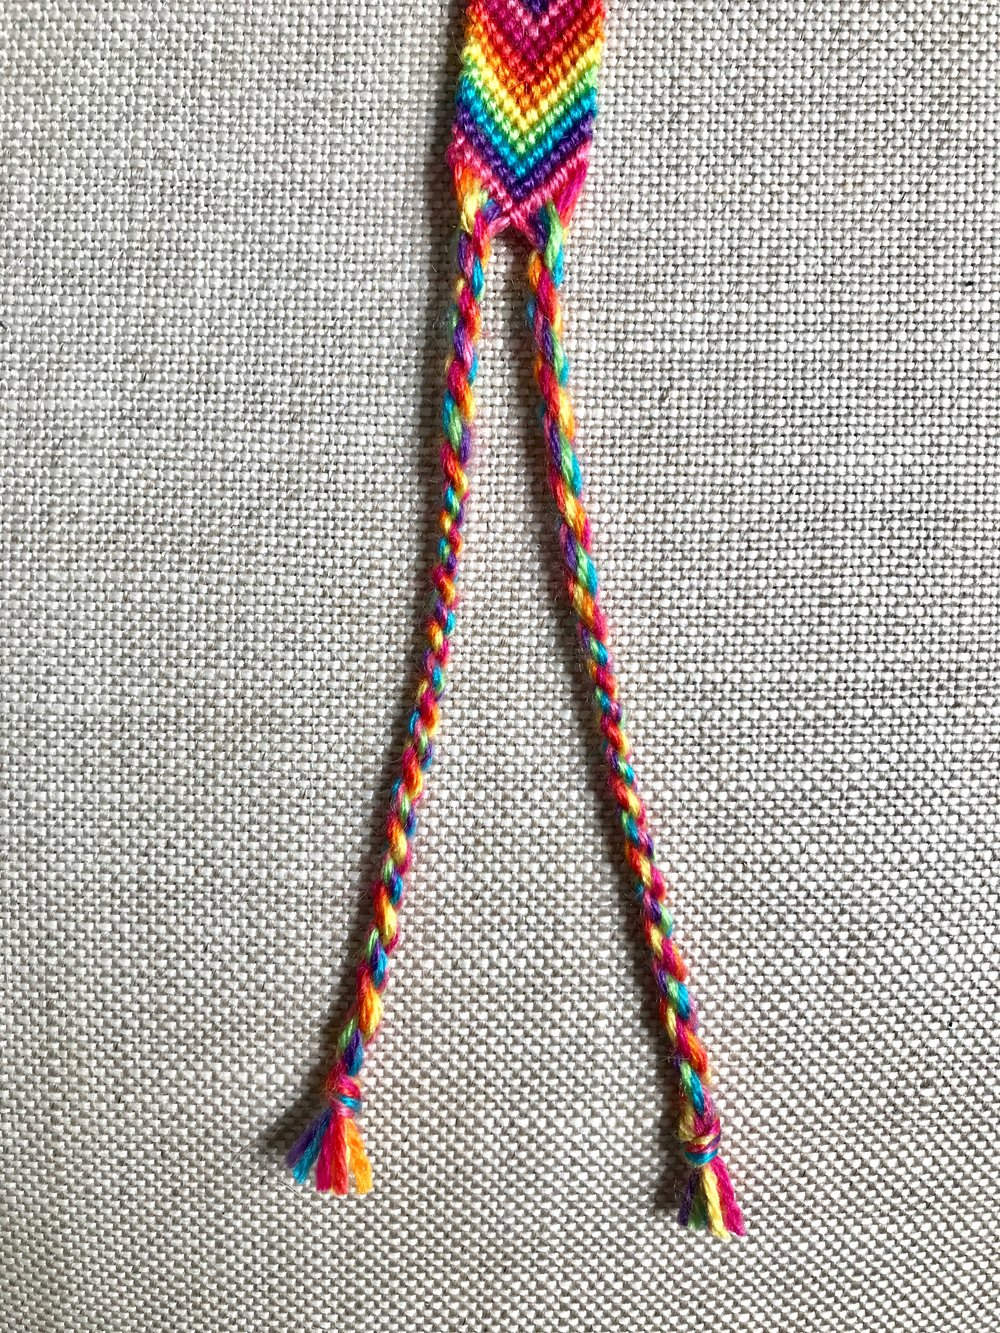 24. Repeat steps 20-23 to create the second rope tie.